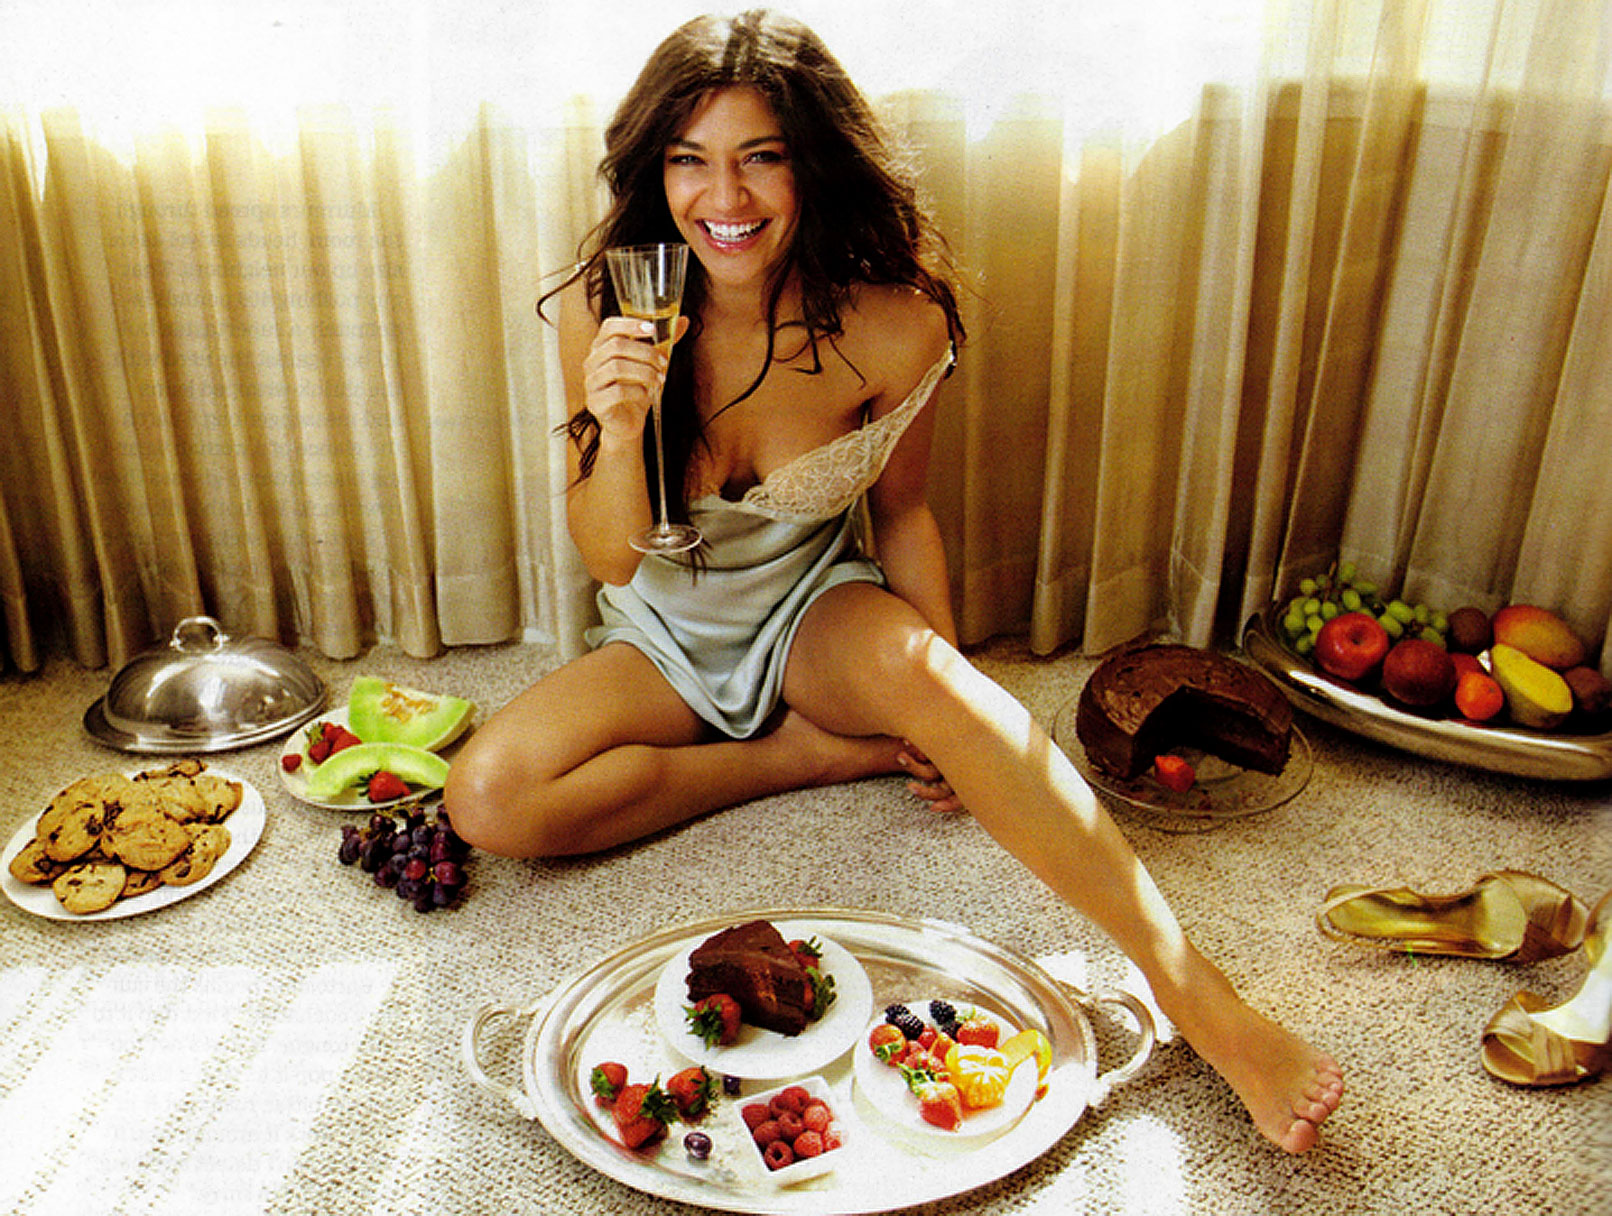 Jessica Szohr Gets Stuffed for Men's Health